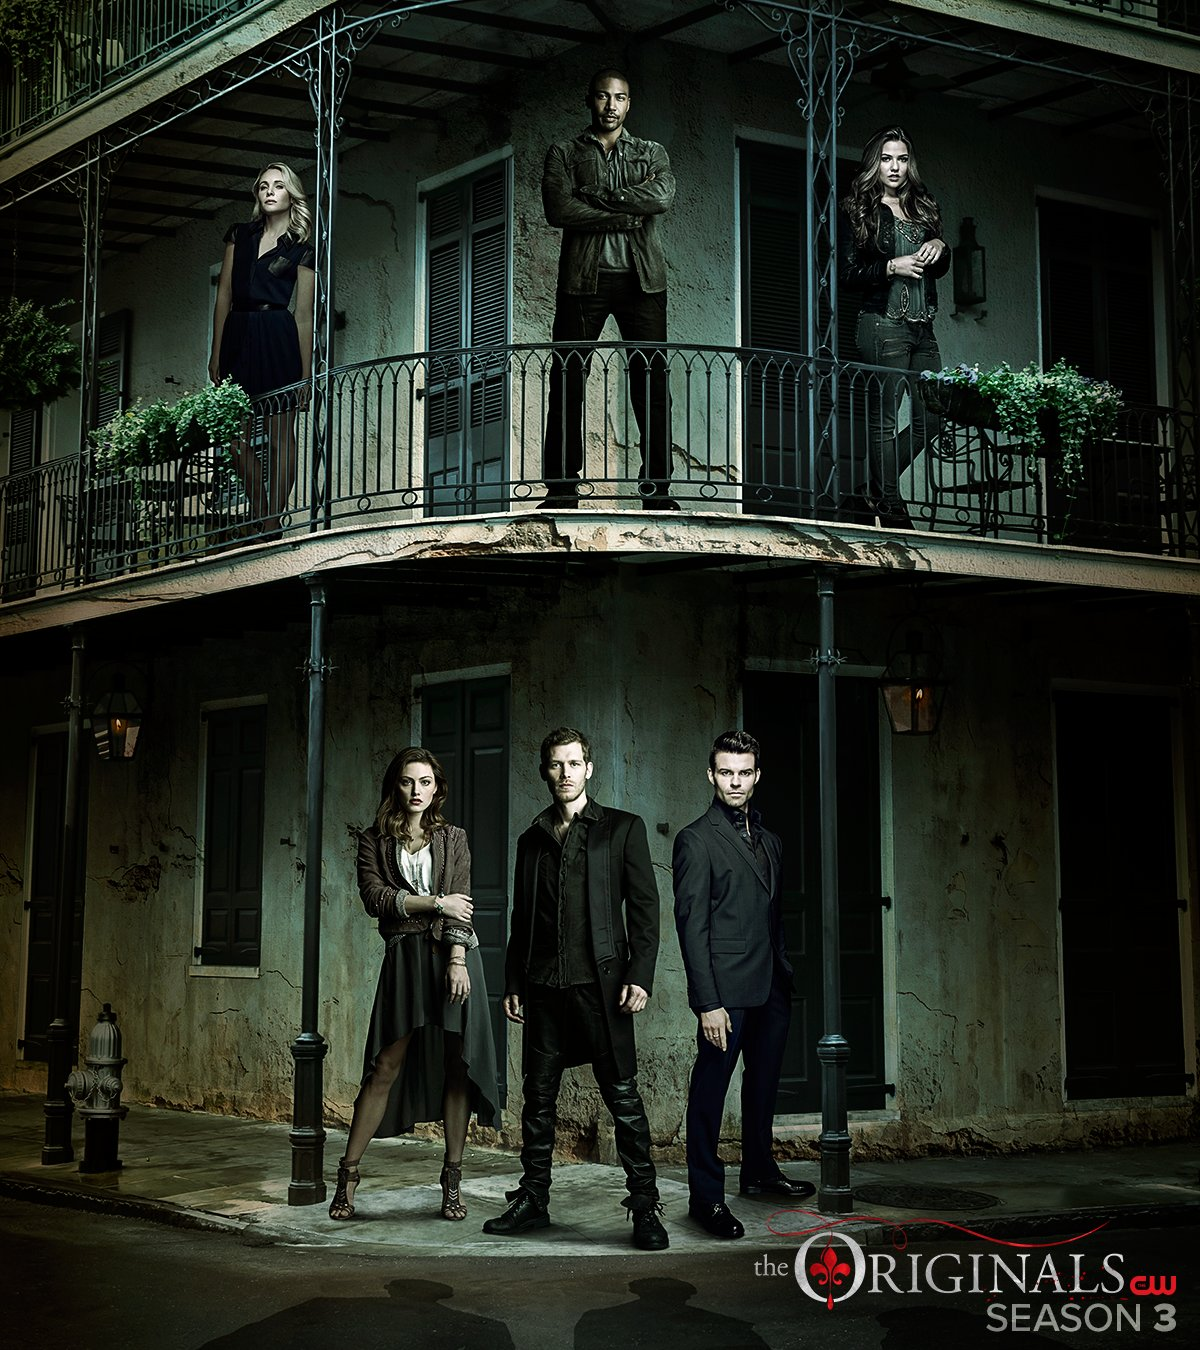 Haunted by the sins of their past. The final season of #TheOriginals begins Wednesday, April 18 at 9/8c on The CW. https://t.co/aNFIvZY6ib